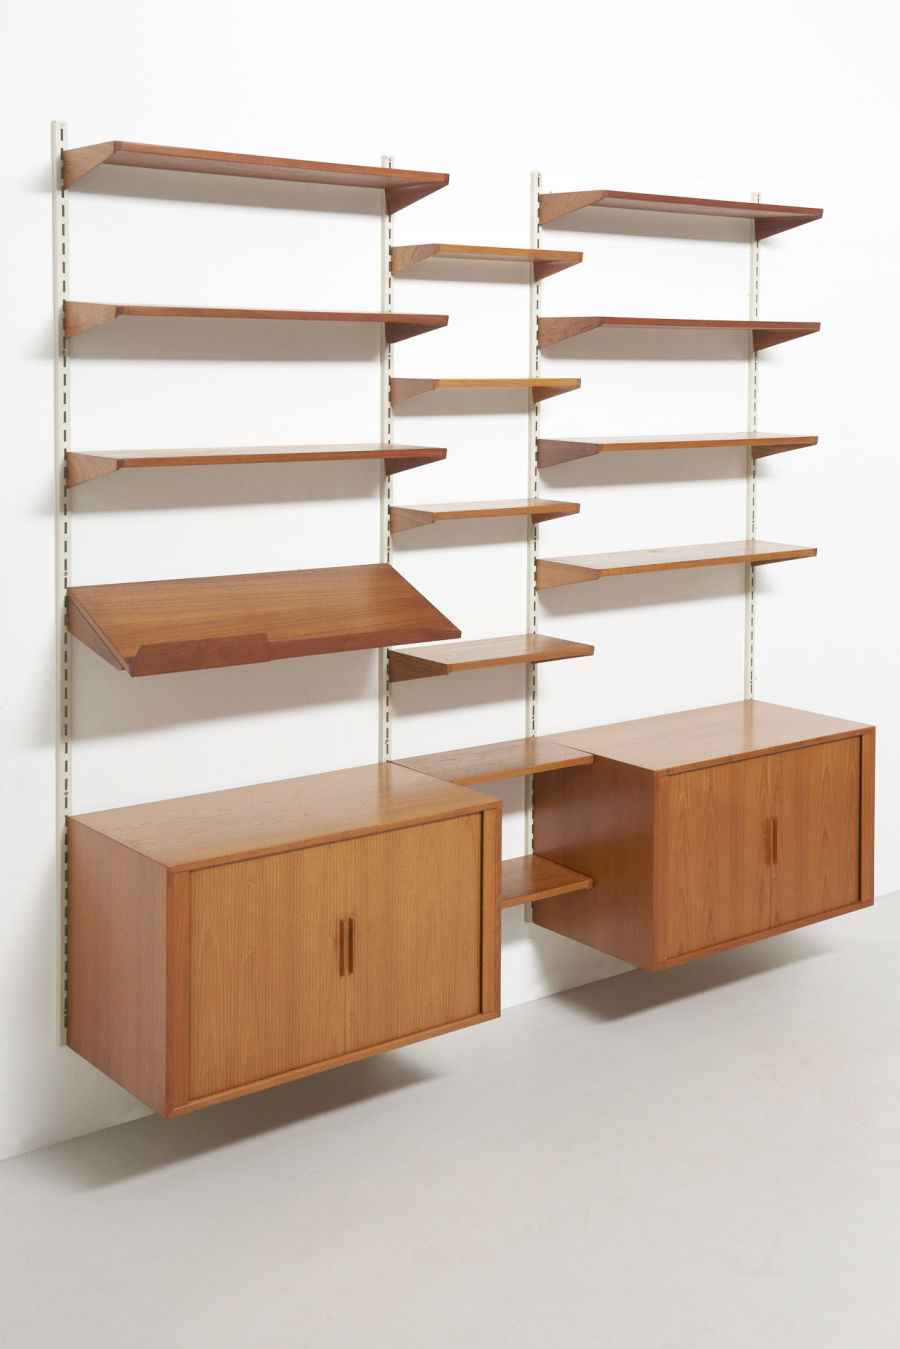 modestfurniture-vintage-2350-wall-unit-set3-kai-kristiansen-fm-teak07